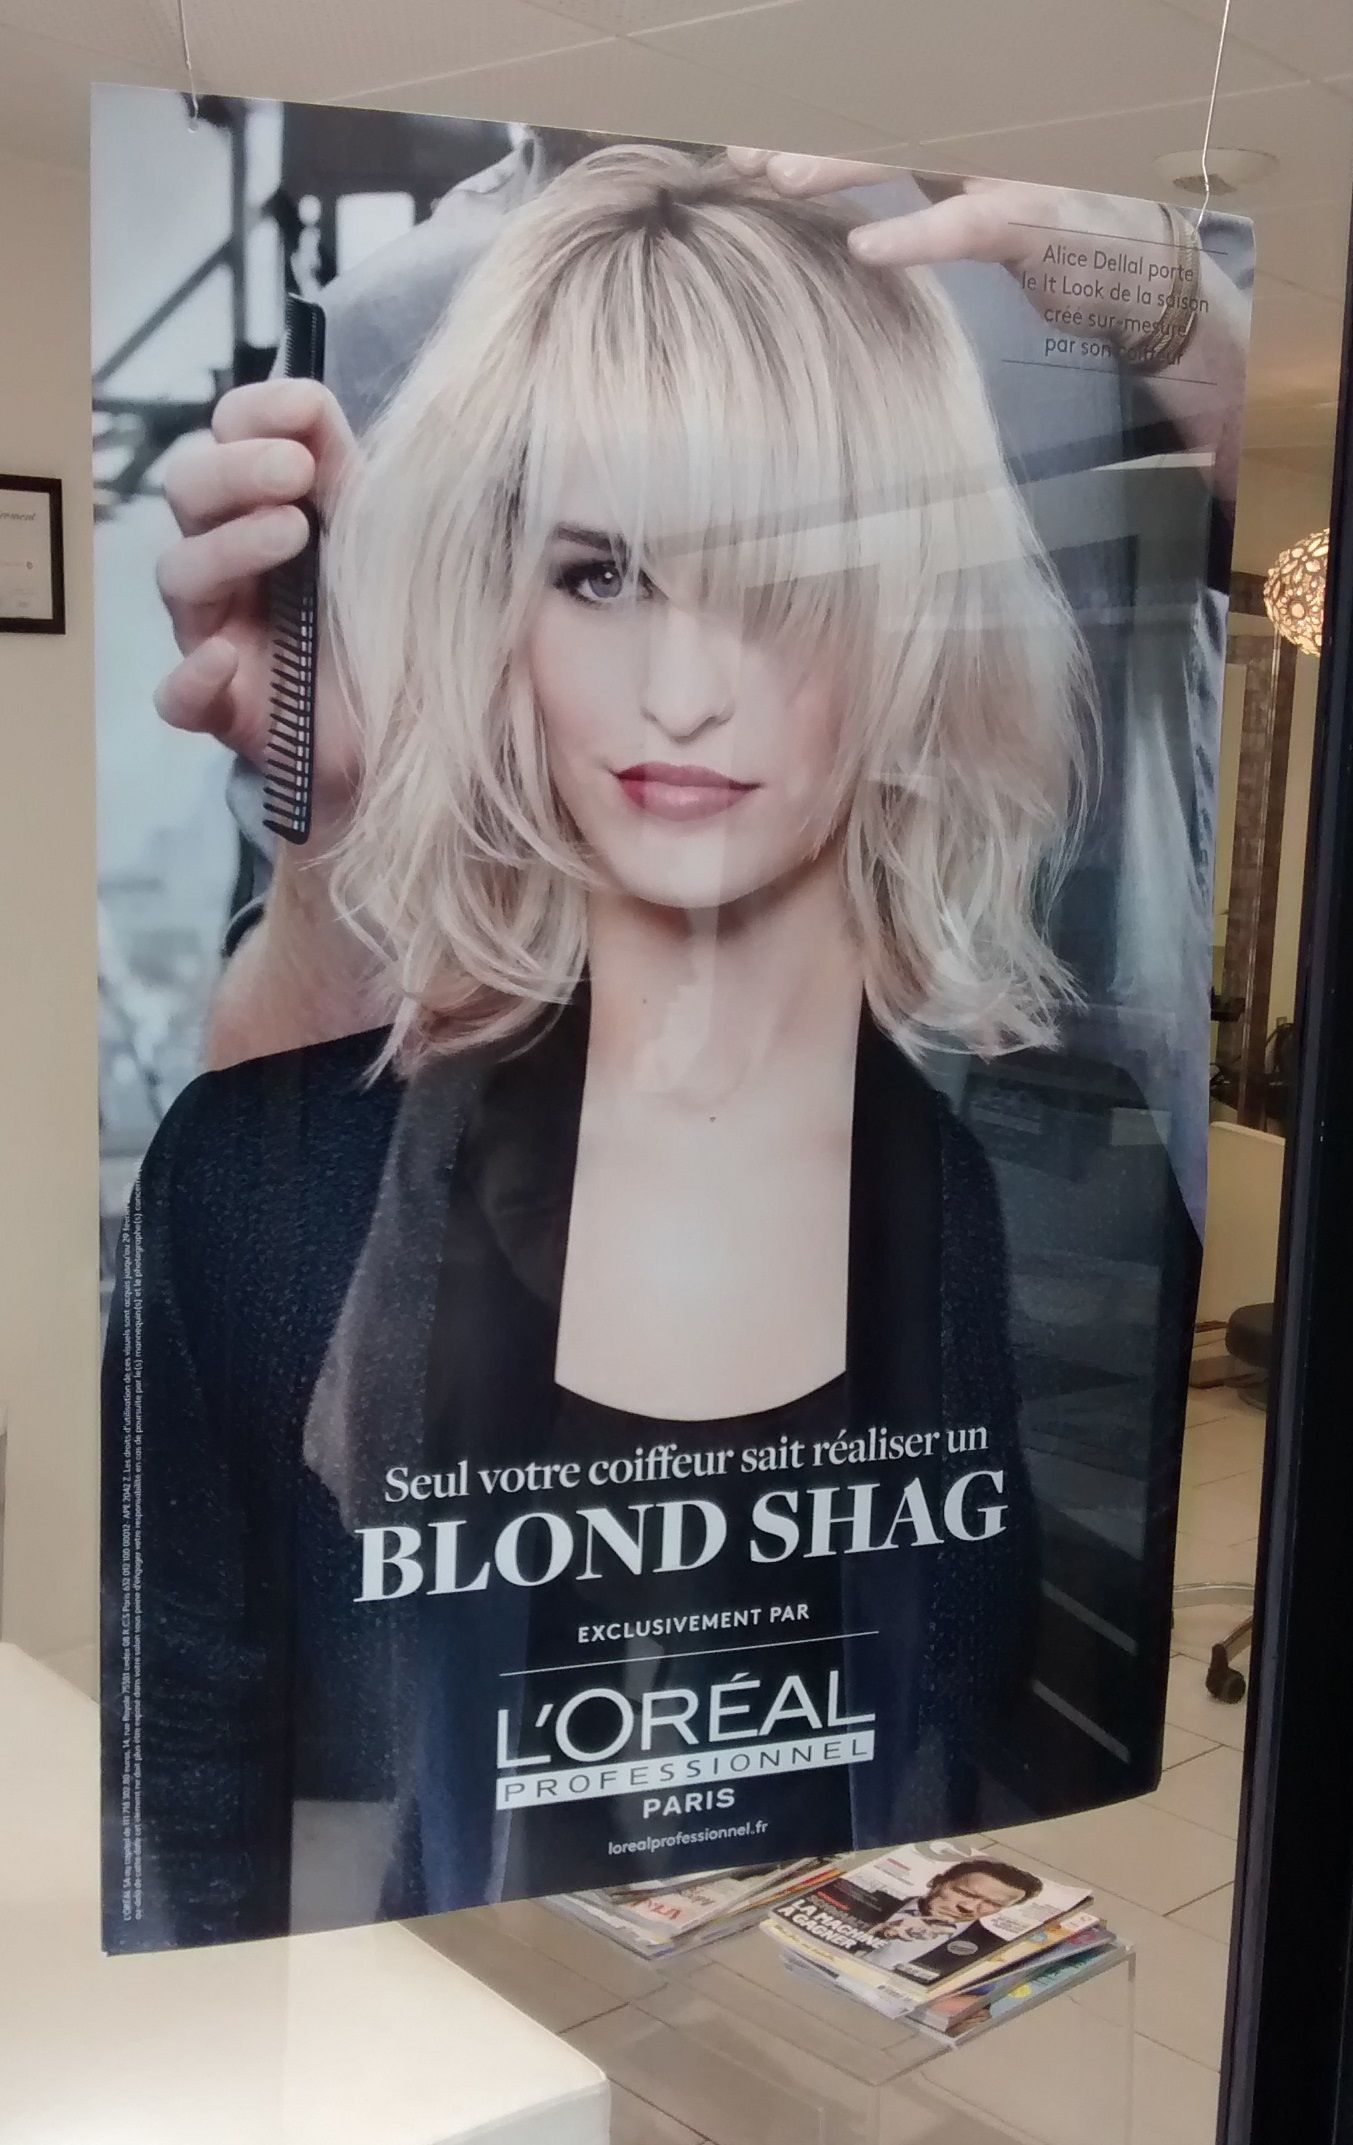 Blonde Shag Warms Your Cockles Pinterest